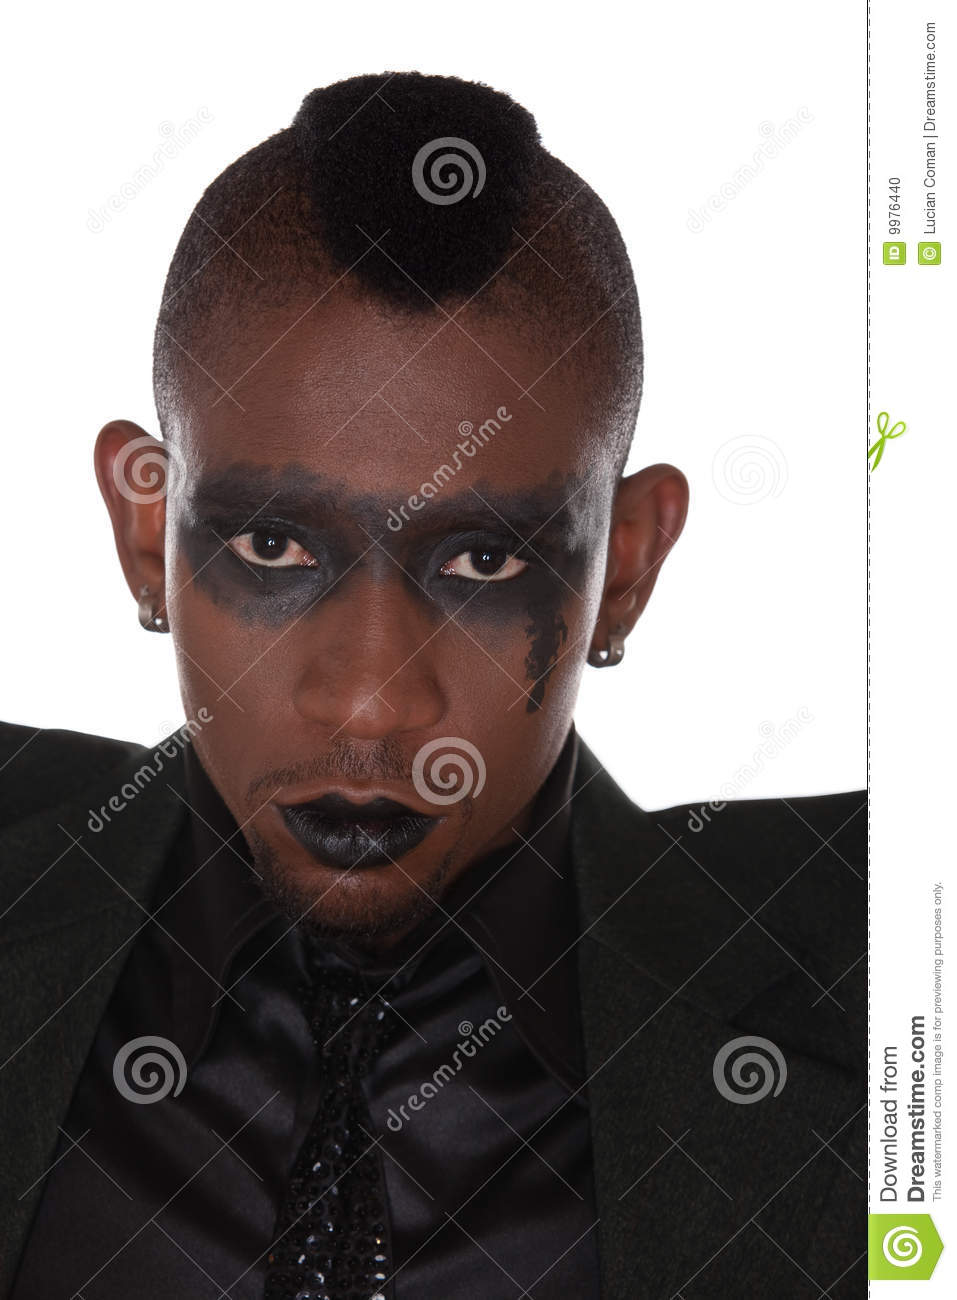 Gothic Look African Stock Photo Image 9976440